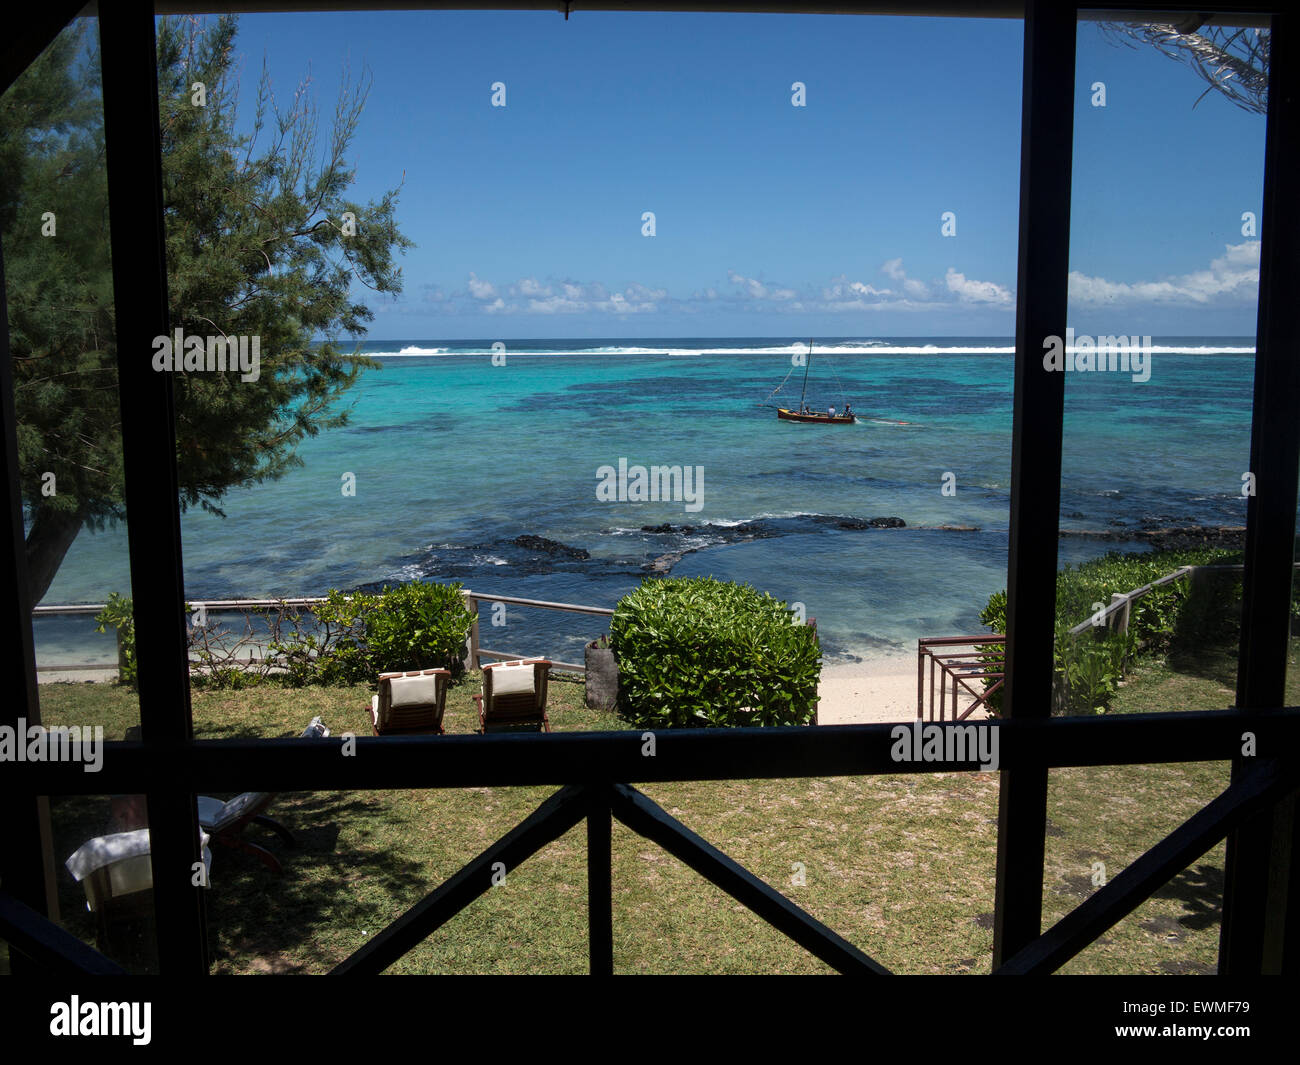 barriere de corail Blue Bay ile Maurice Stock Photo: 84658877 - Alamy